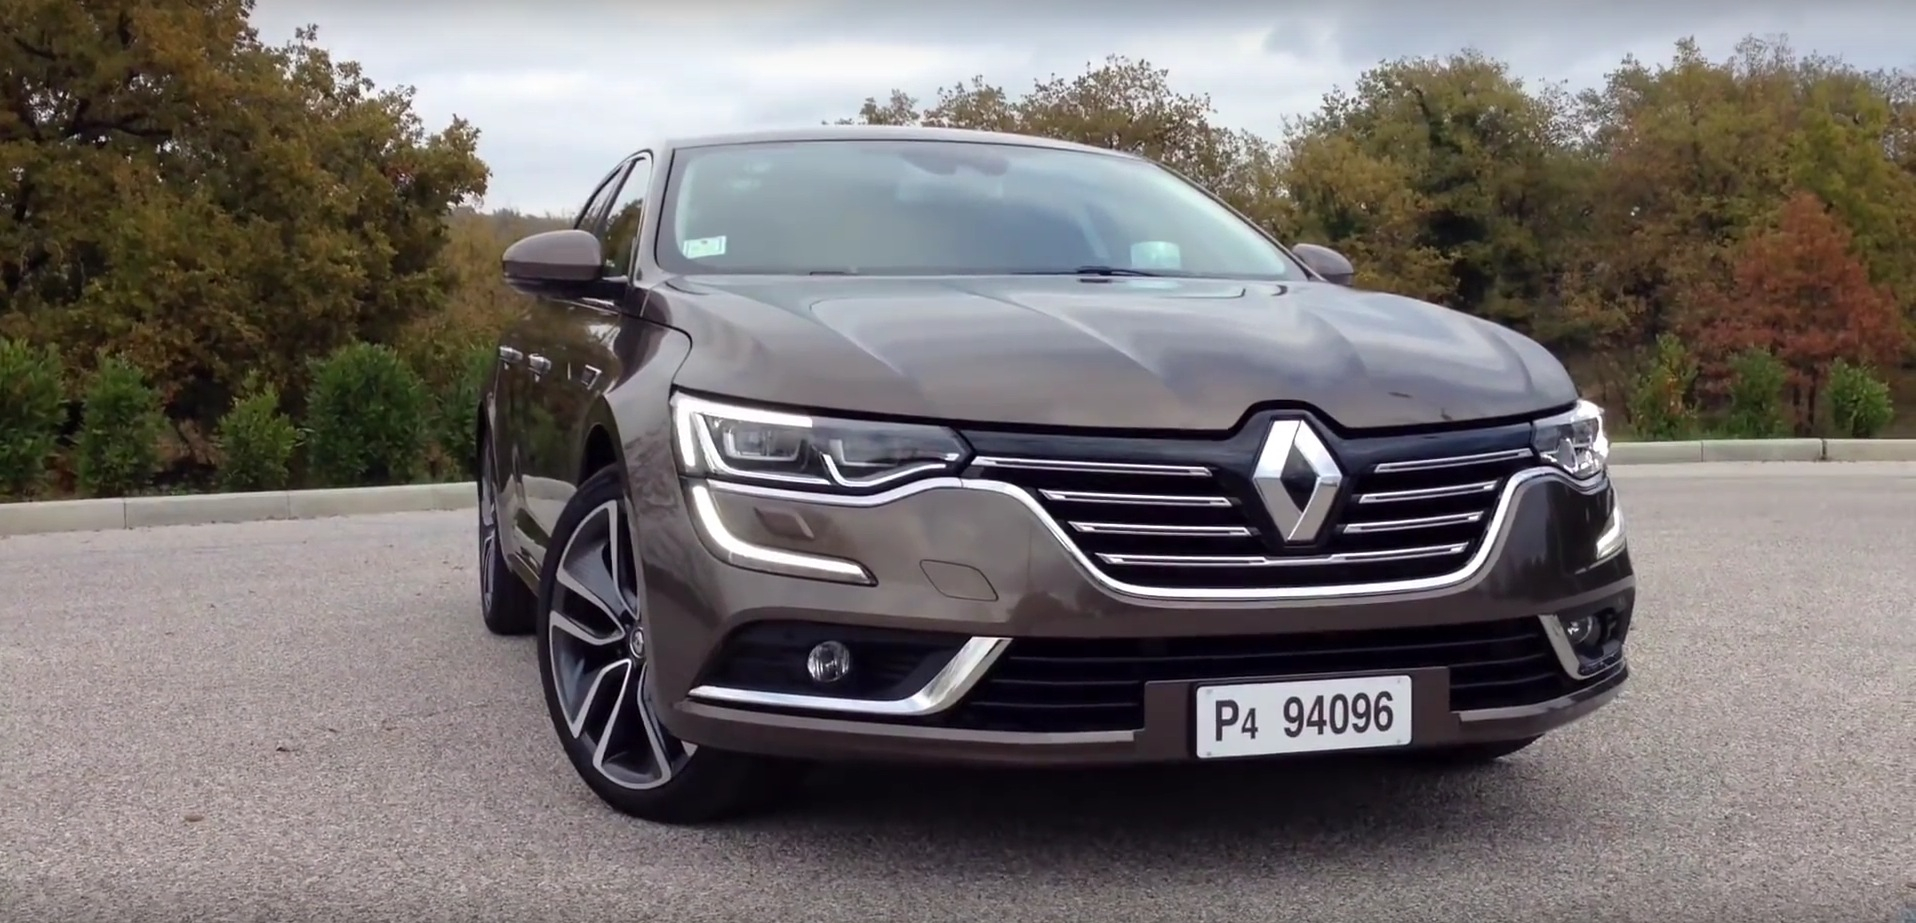 renault talisman tce 200 edc7 acceleration test autoevolution. Black Bedroom Furniture Sets. Home Design Ideas